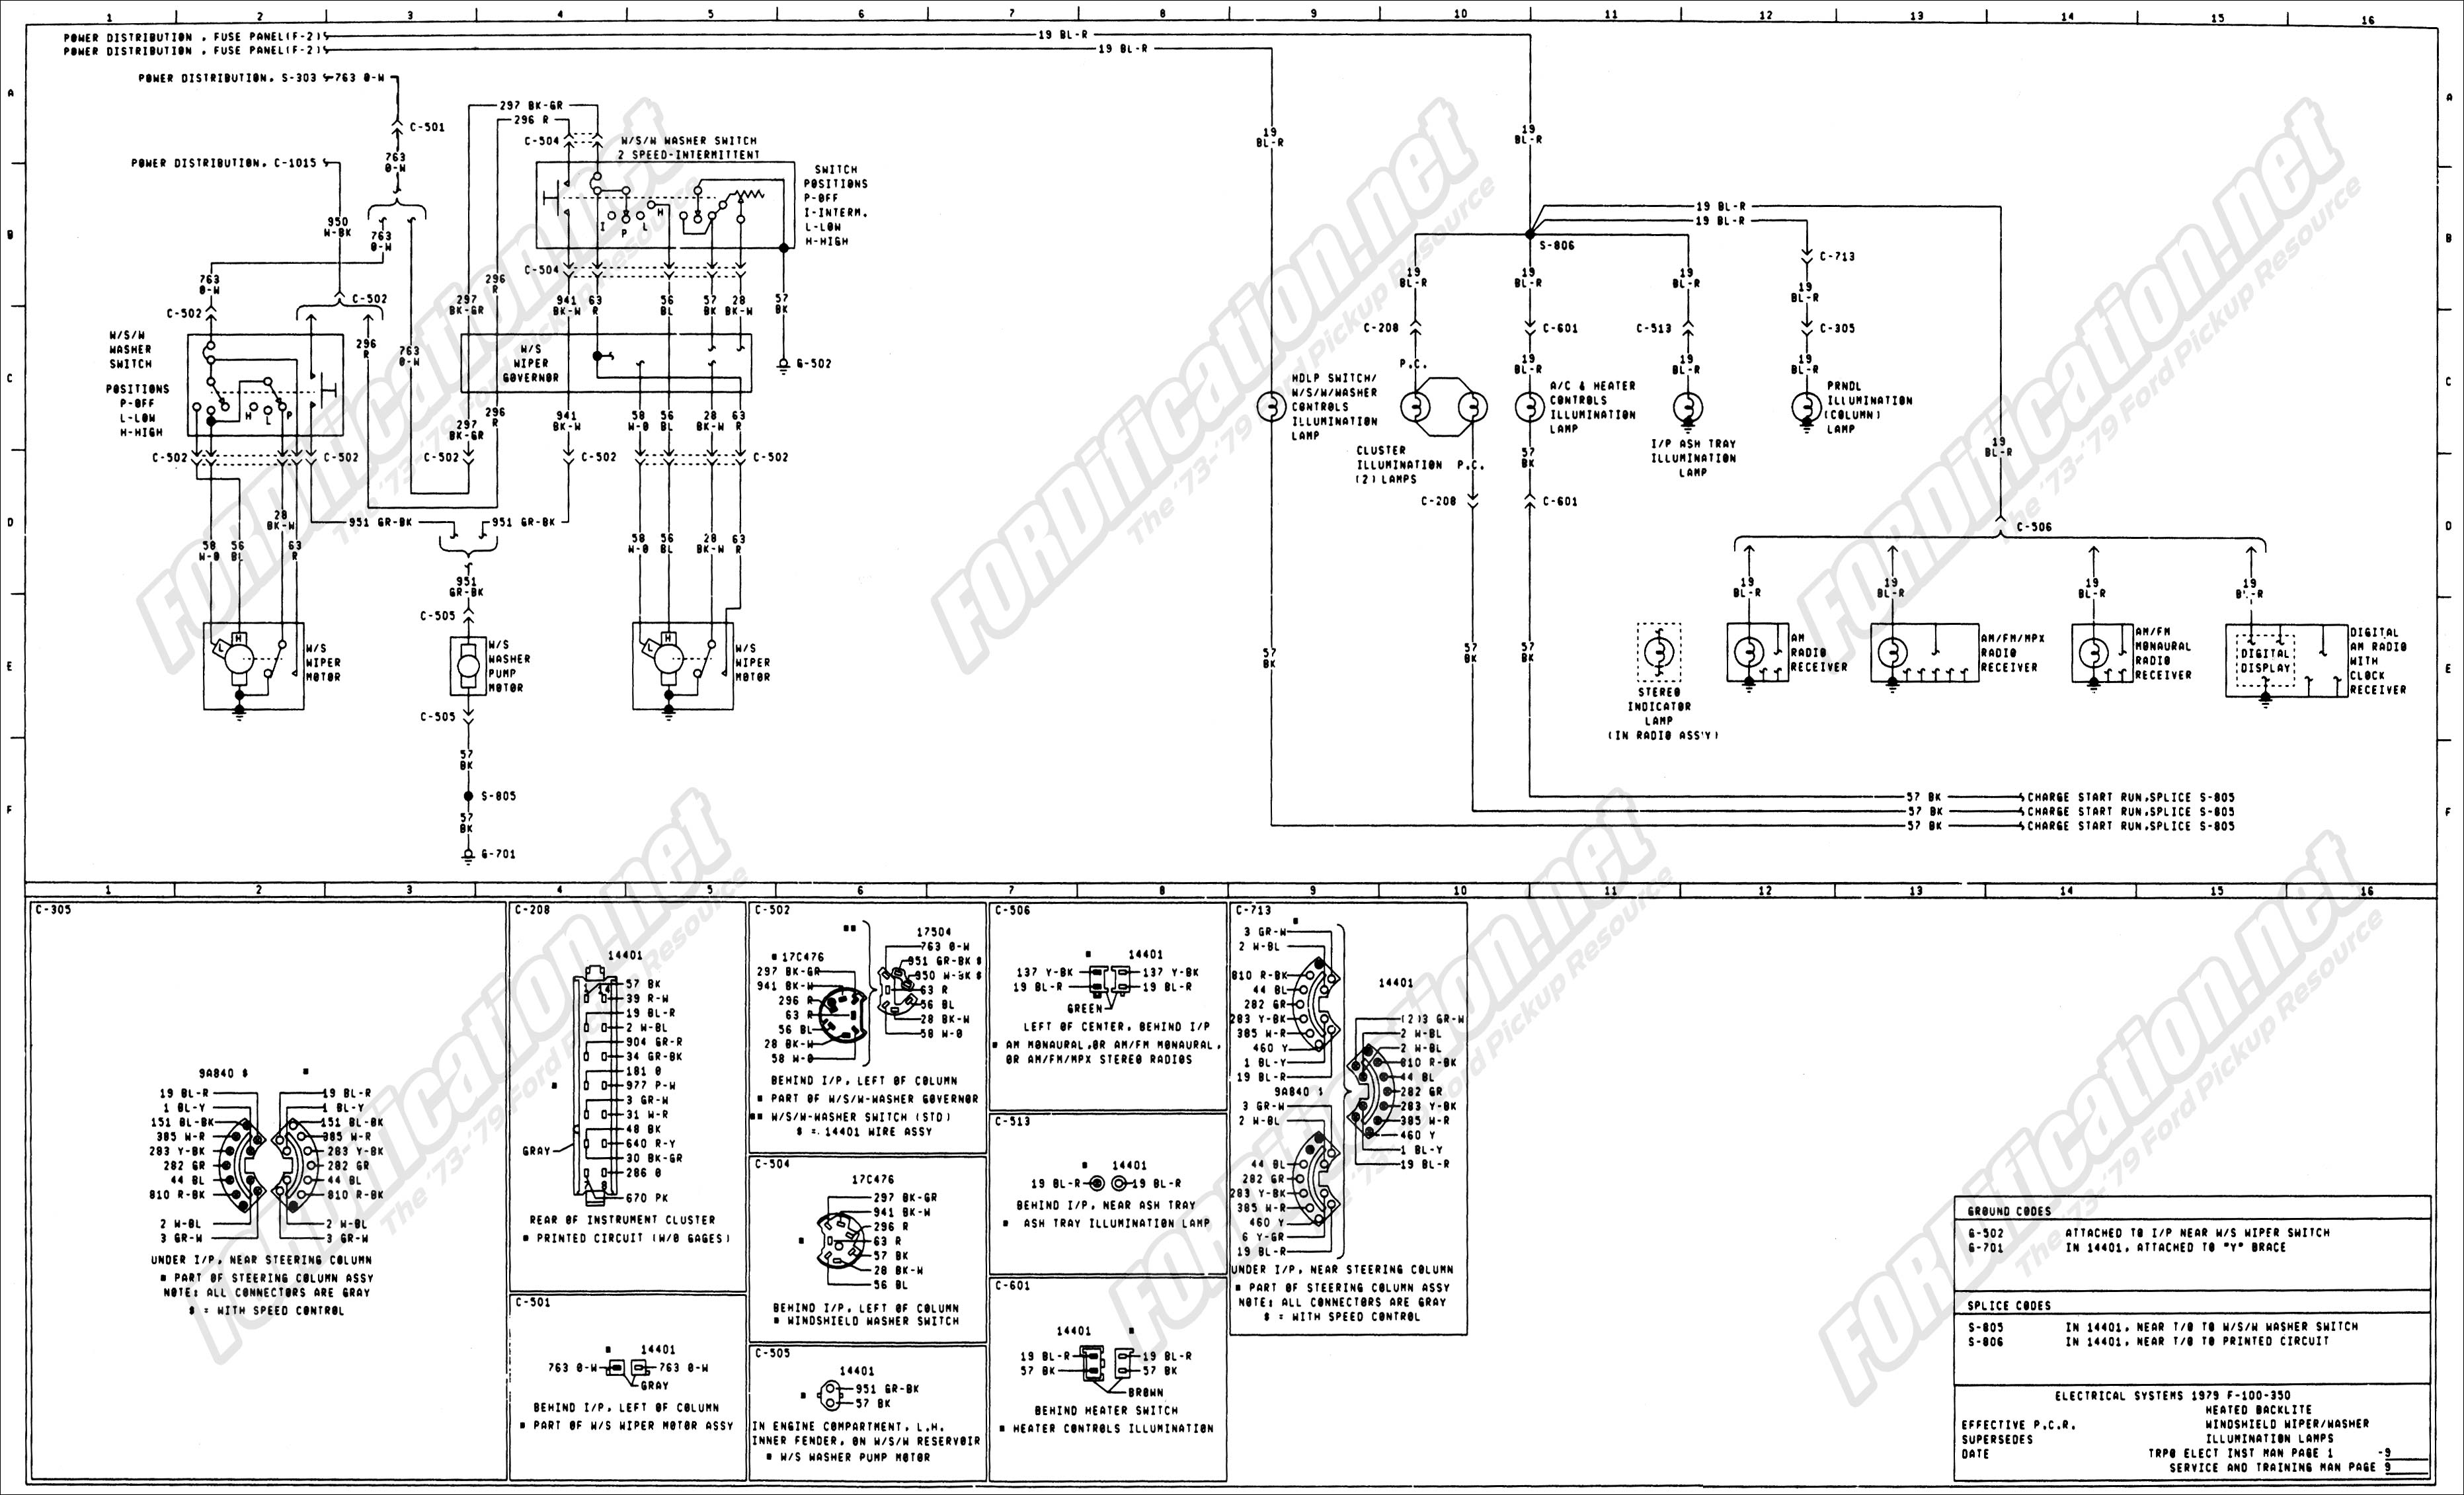 wiring_79master_9of9 1995 ford l9000 wiring schematic ford l9000 fuse \u2022 wiring diagrams ford truck wiring diagrams free at readyjetset.co